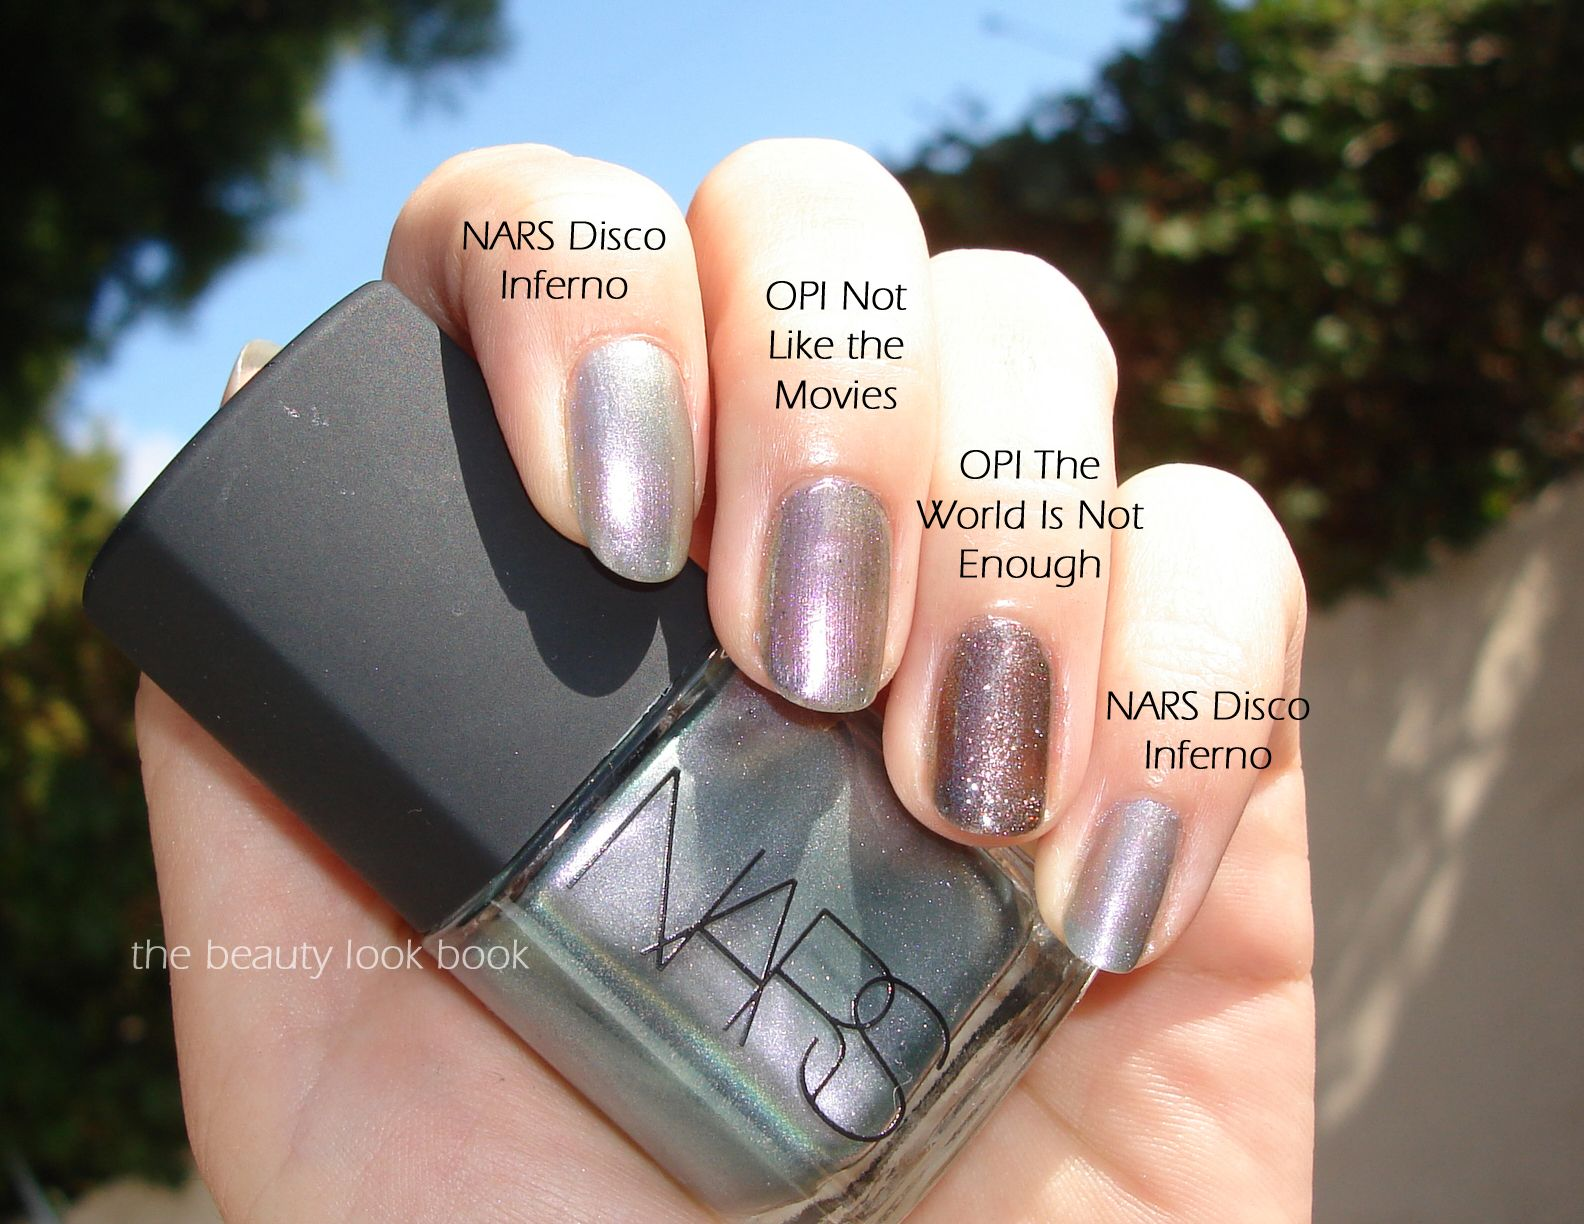 The Beauty Look Book: NARS Disco Inferno Nail Polish - Spring 2013 ...